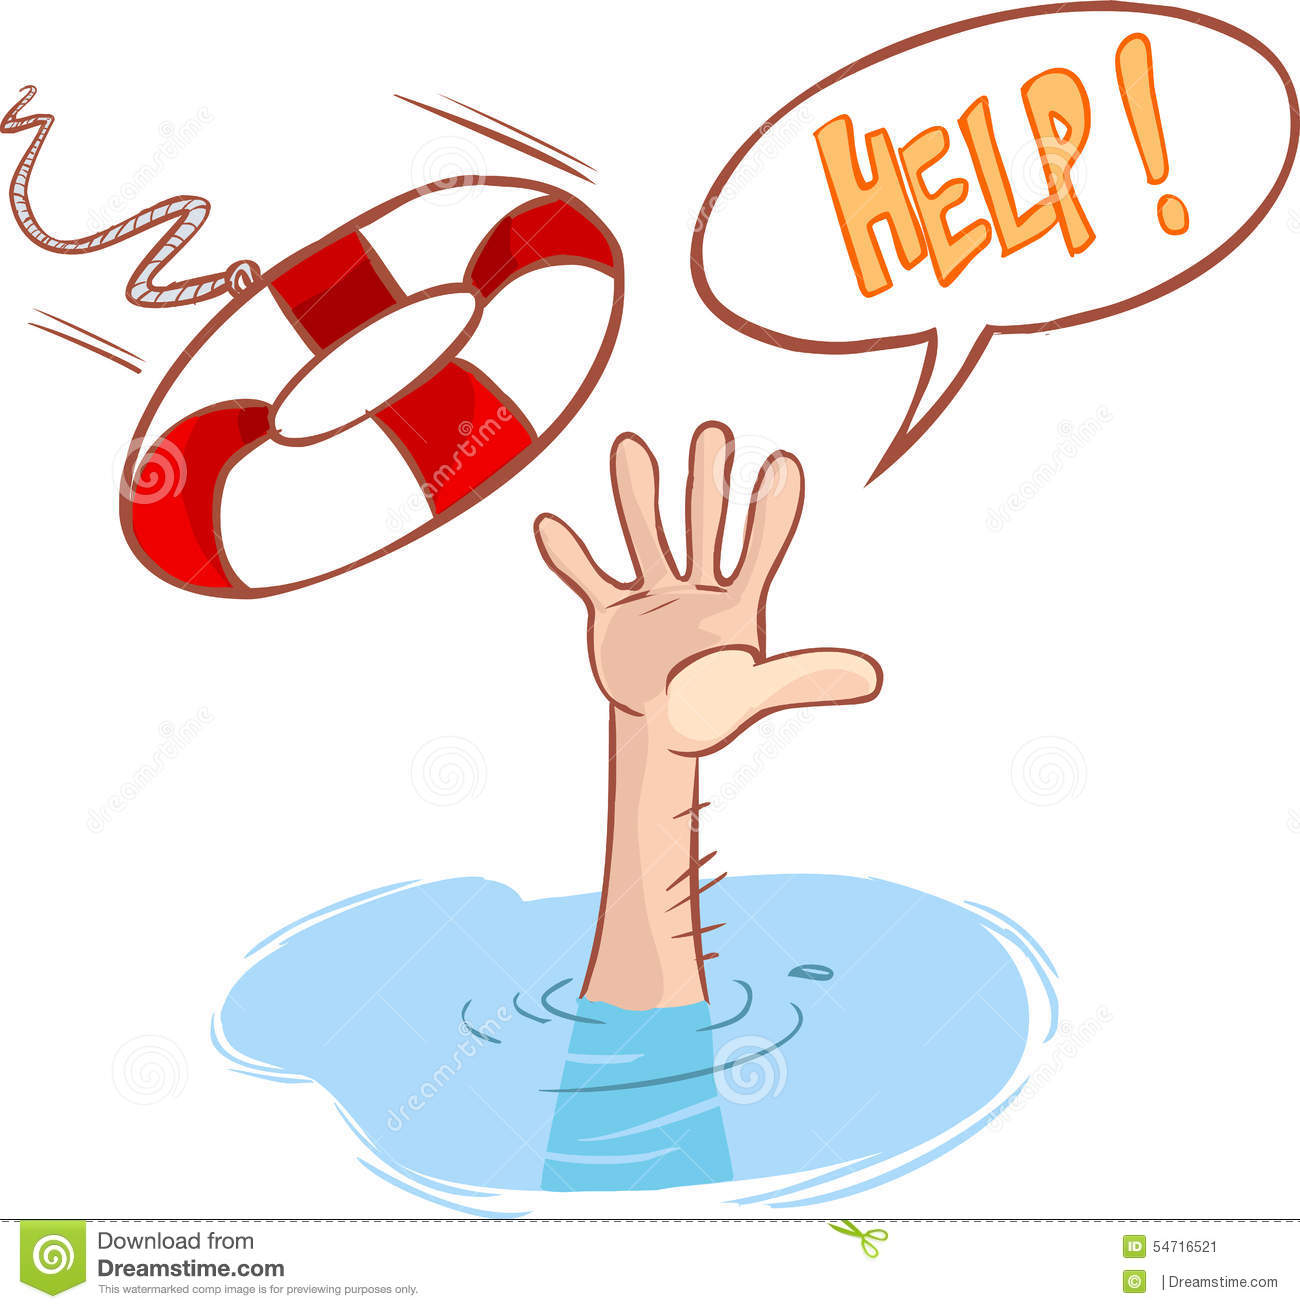 First aid for drowning clipart.